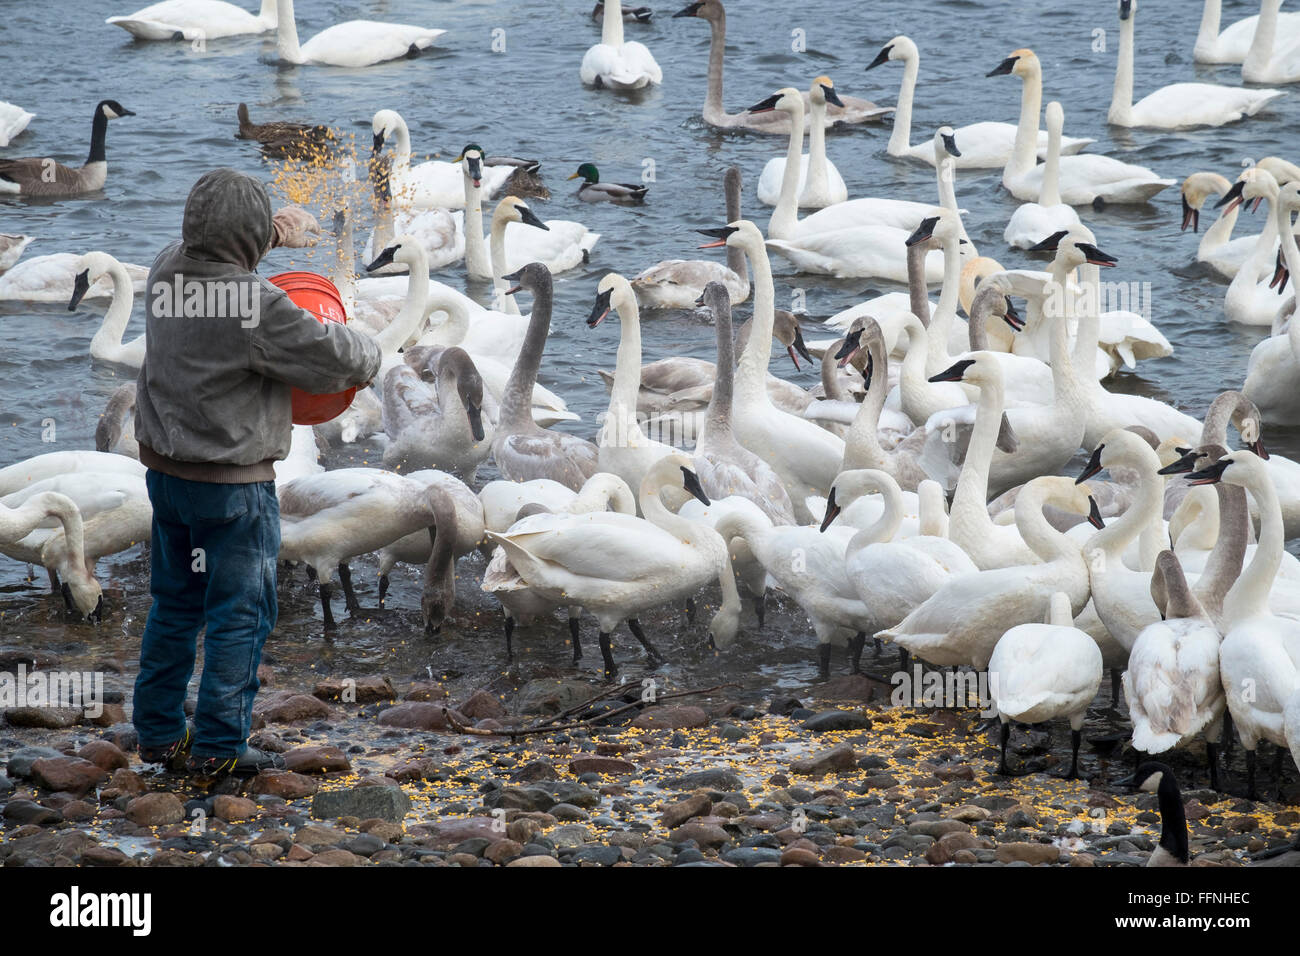 Trumpeter Swans feeding station at Swan Park on the Mississippi River, Monticello, MN,USA - Stock Image